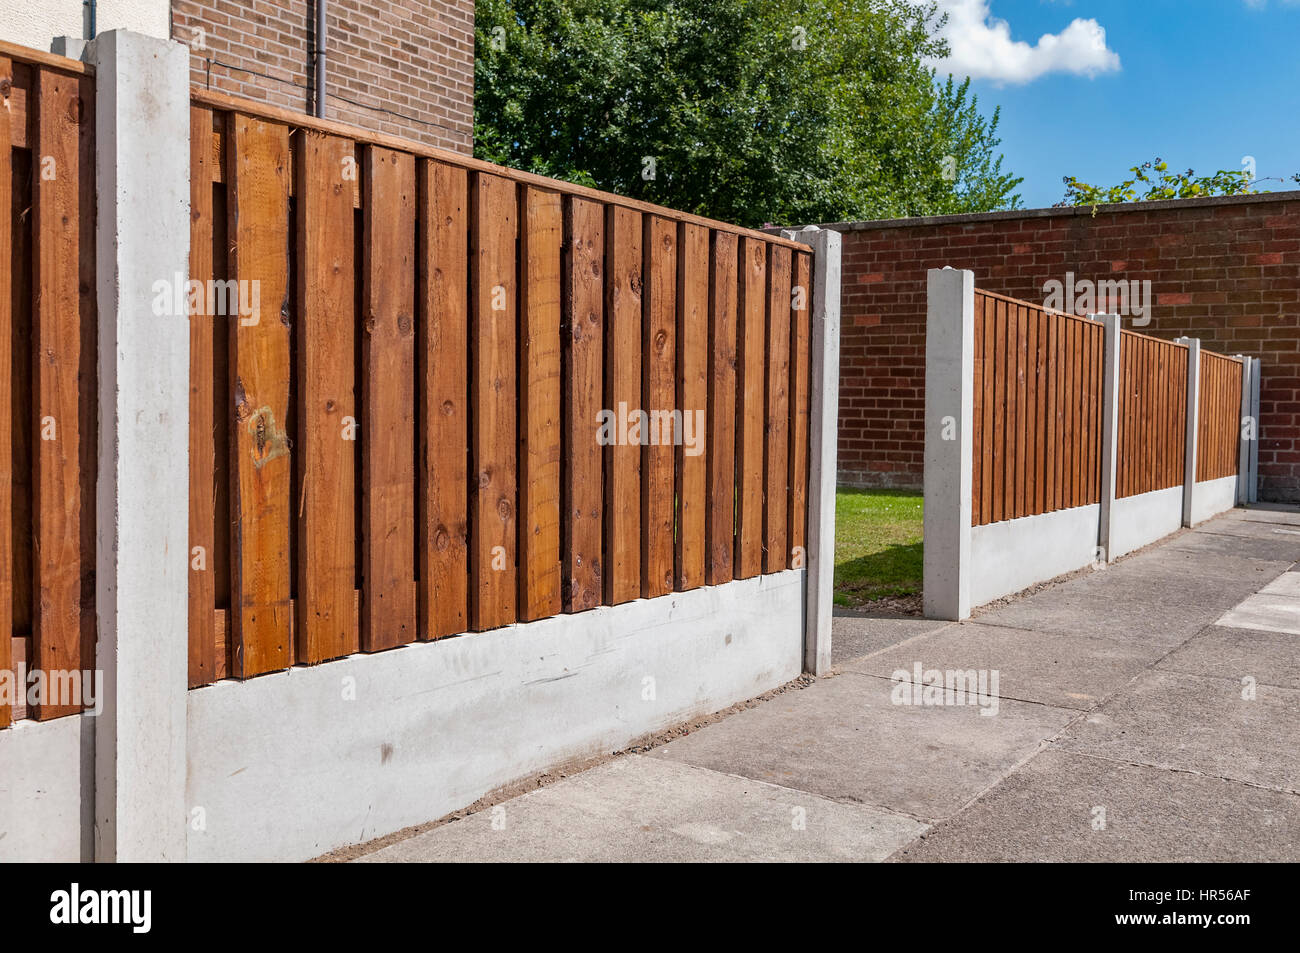 Wooden Garden Fence With Concrete Posts   Stock Image